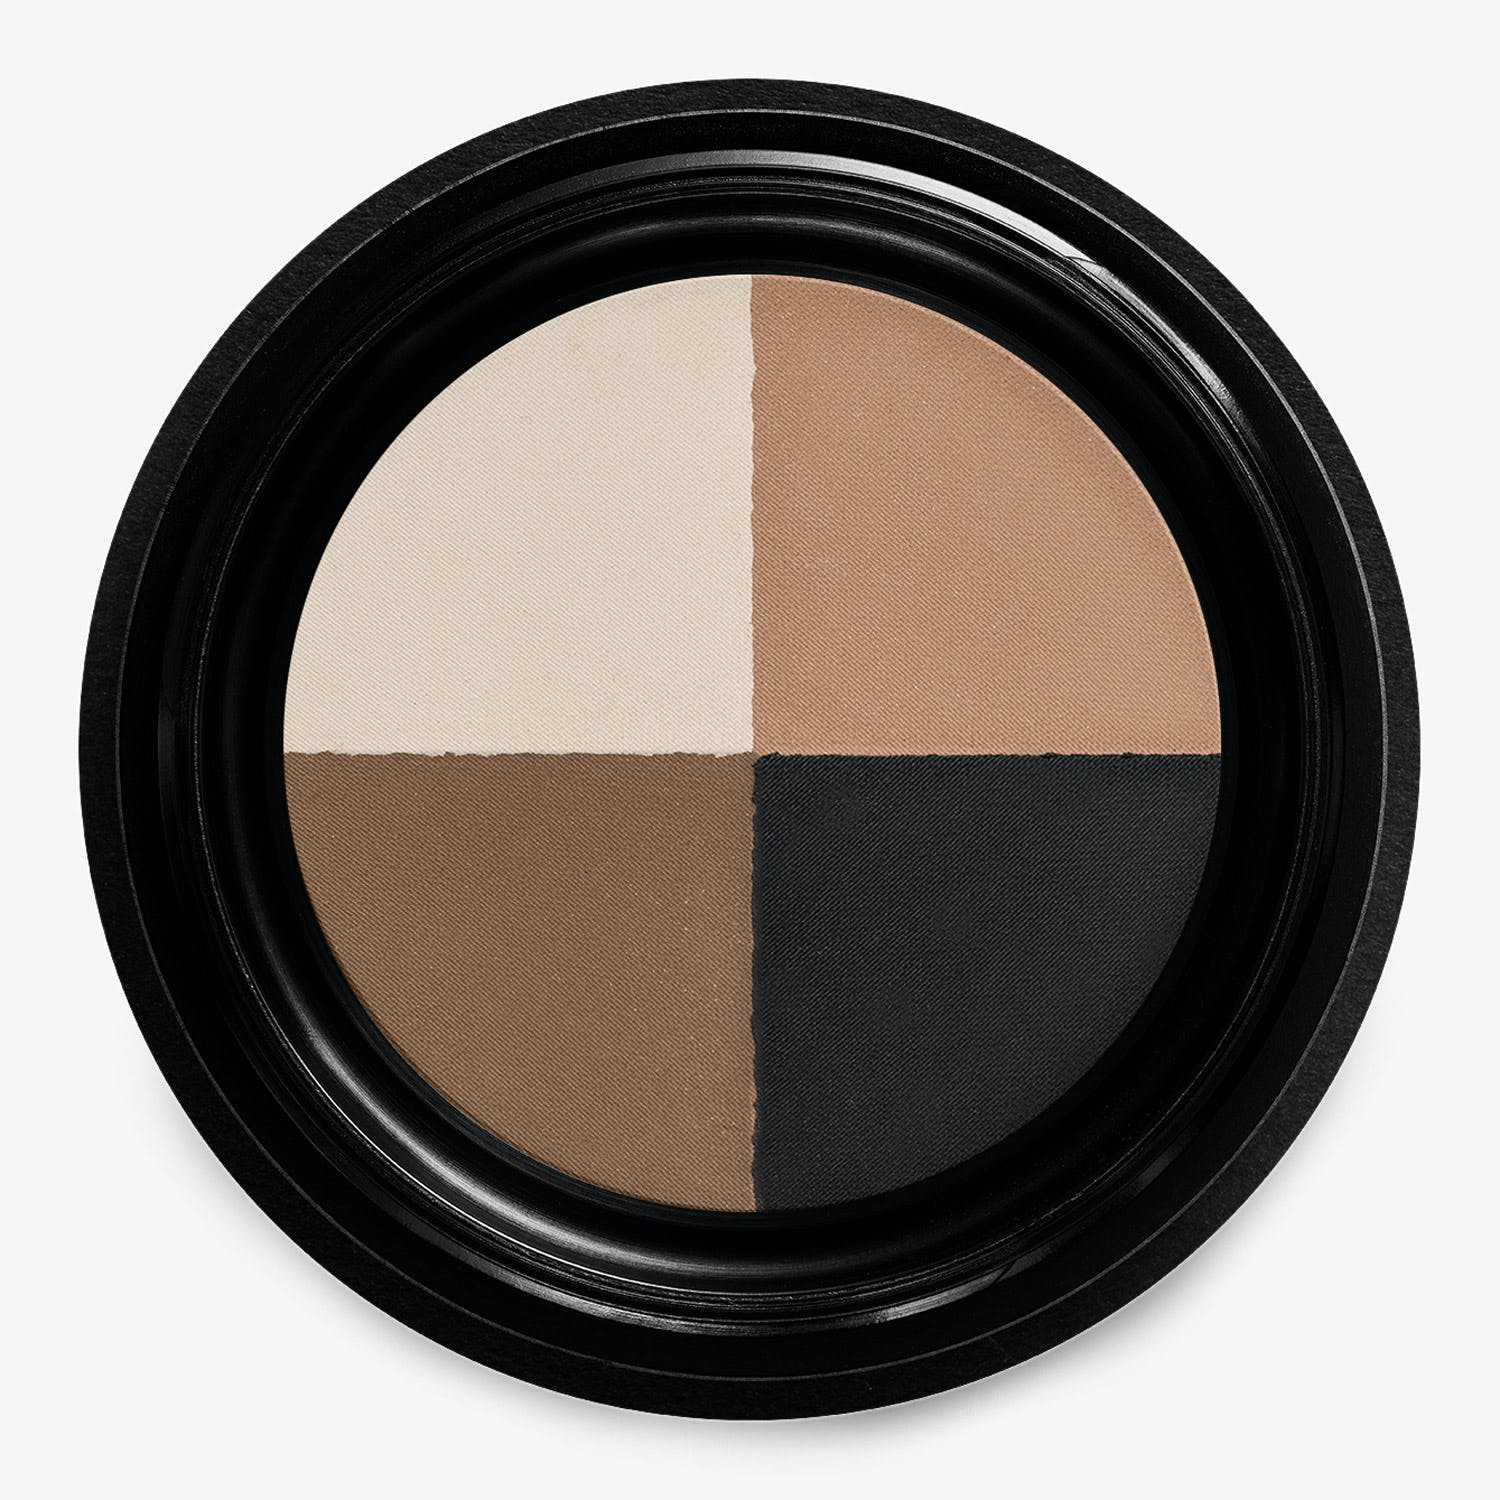 Product Image - Manasi 7 Eye & Brow Quad Earth & Clay